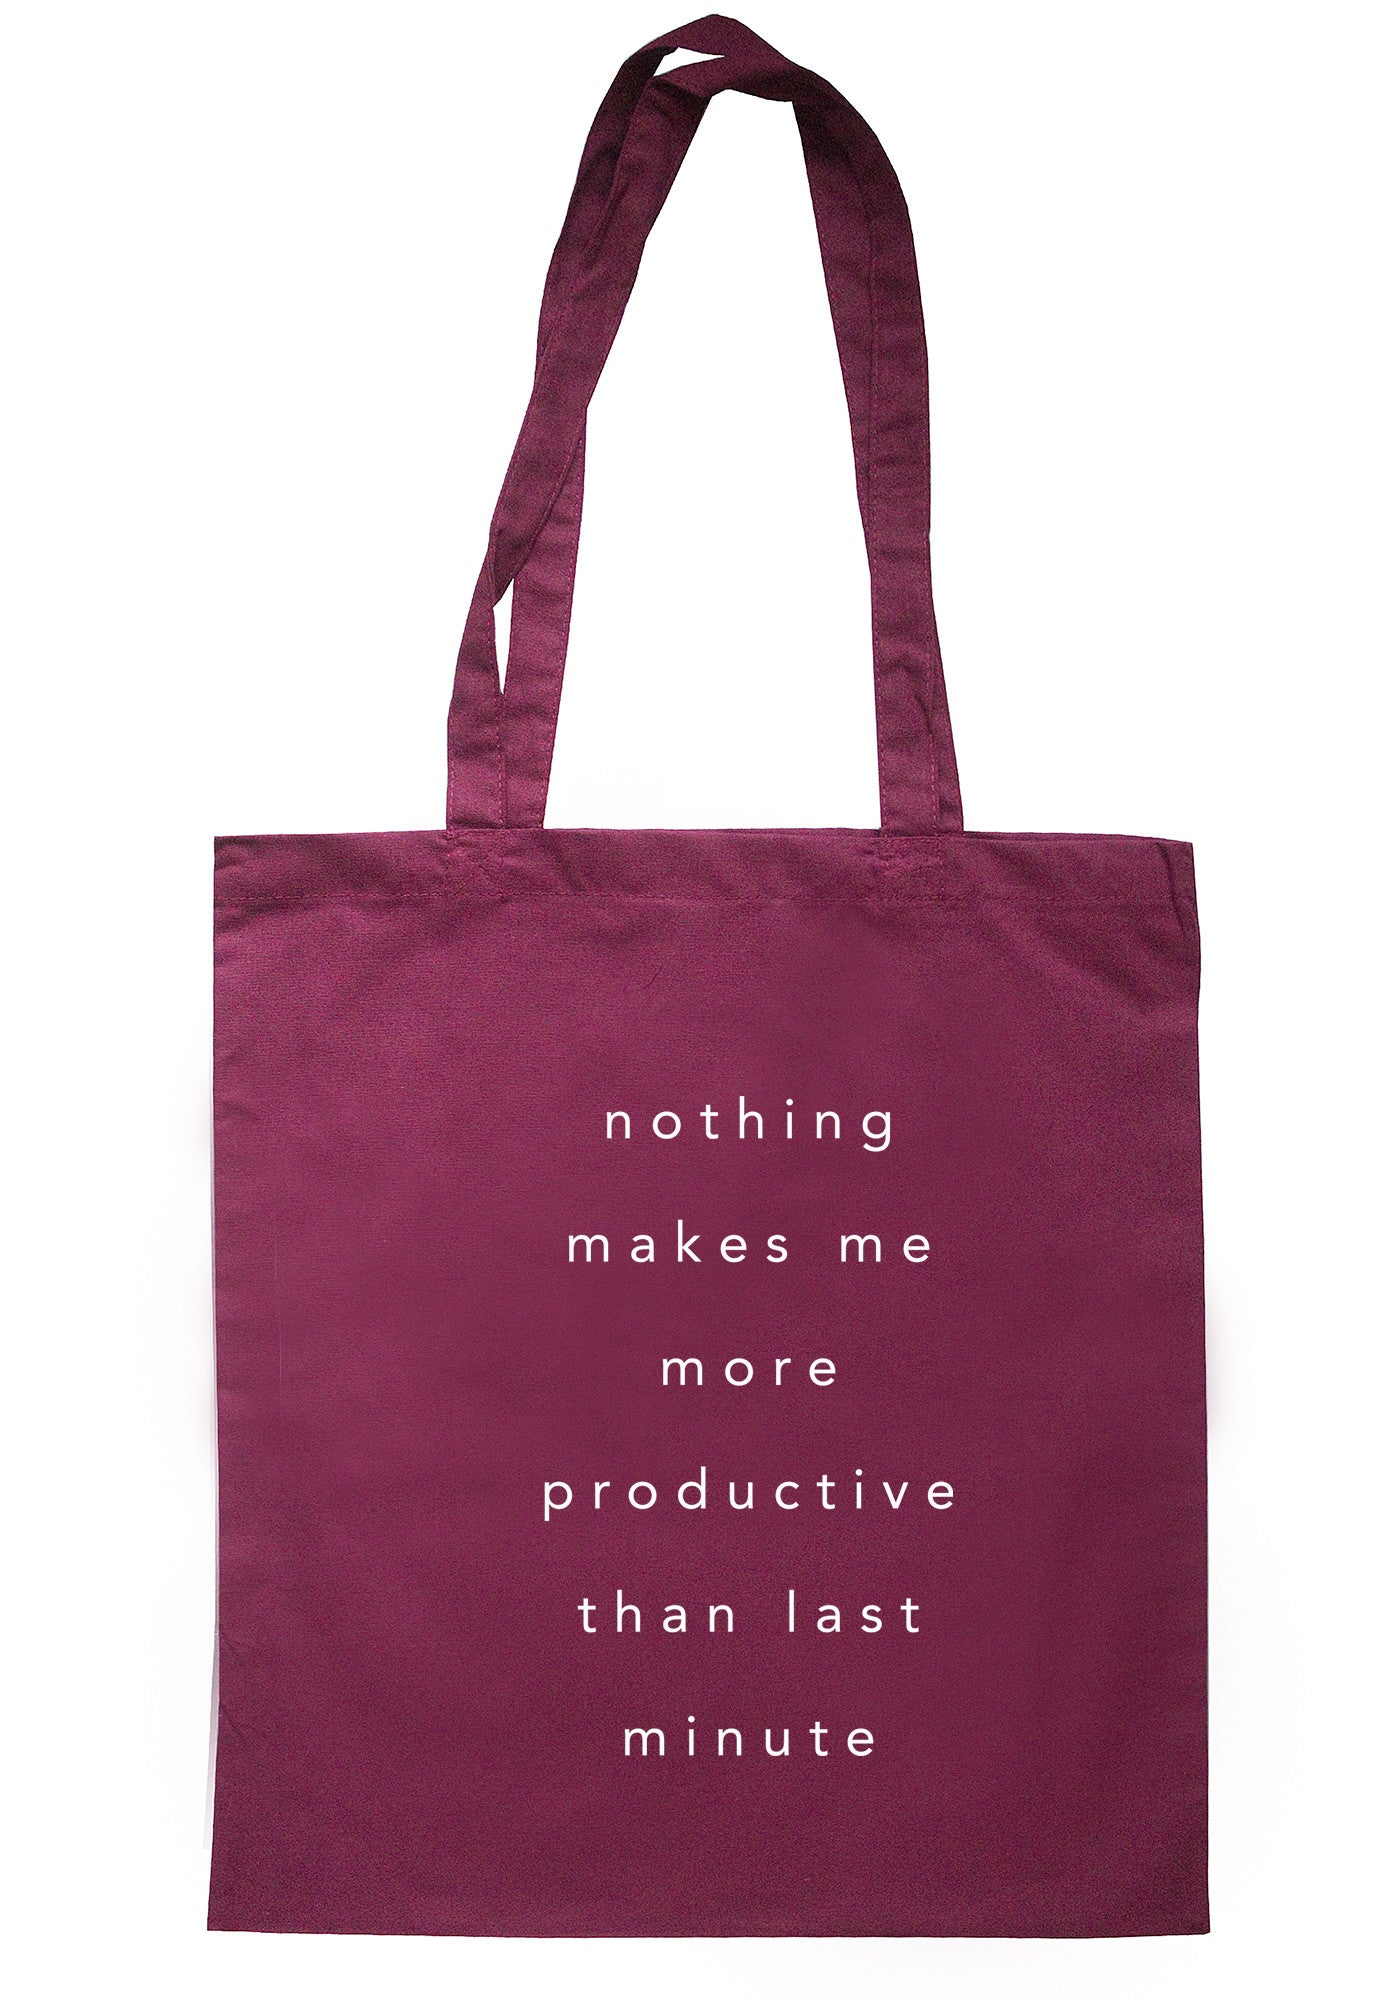 Nothing Makes Me More Productive Than Last Minute Tote Bag TB0624 - Illustrated Identity Ltd.